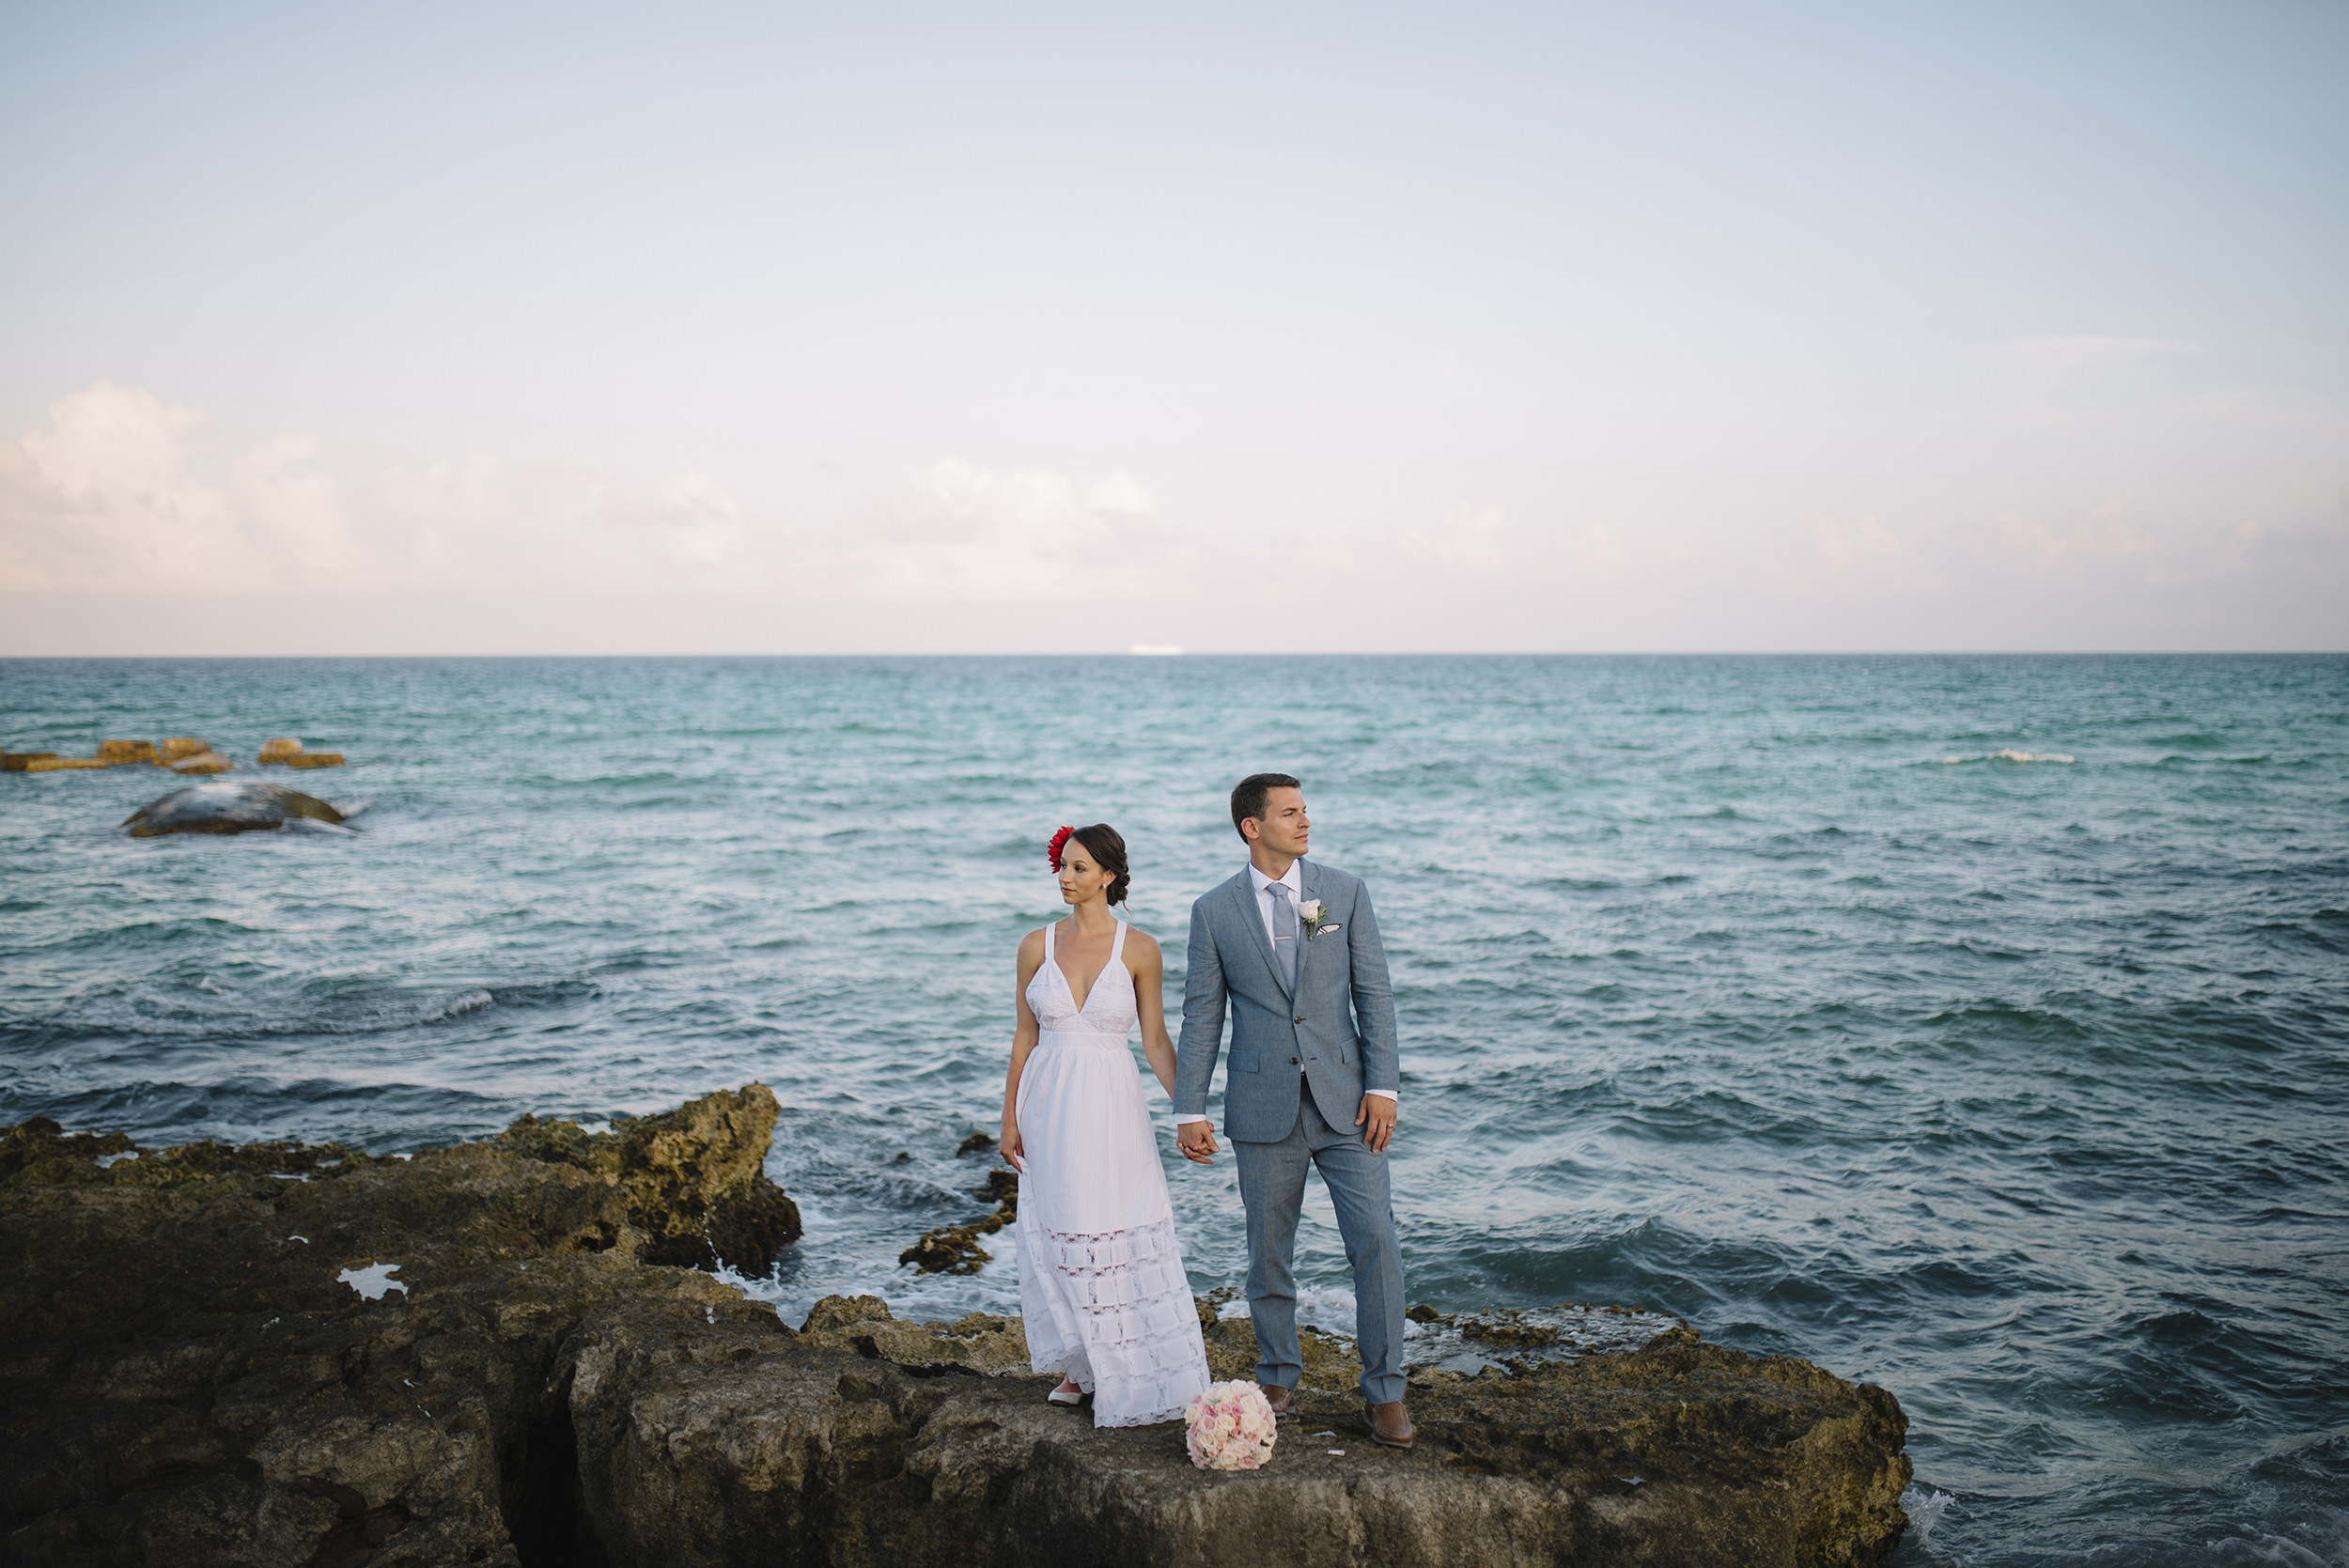 Colby-and-Jess-Intimate-Beach-Wedding-Destination-Cancun-Mexico85.jpg